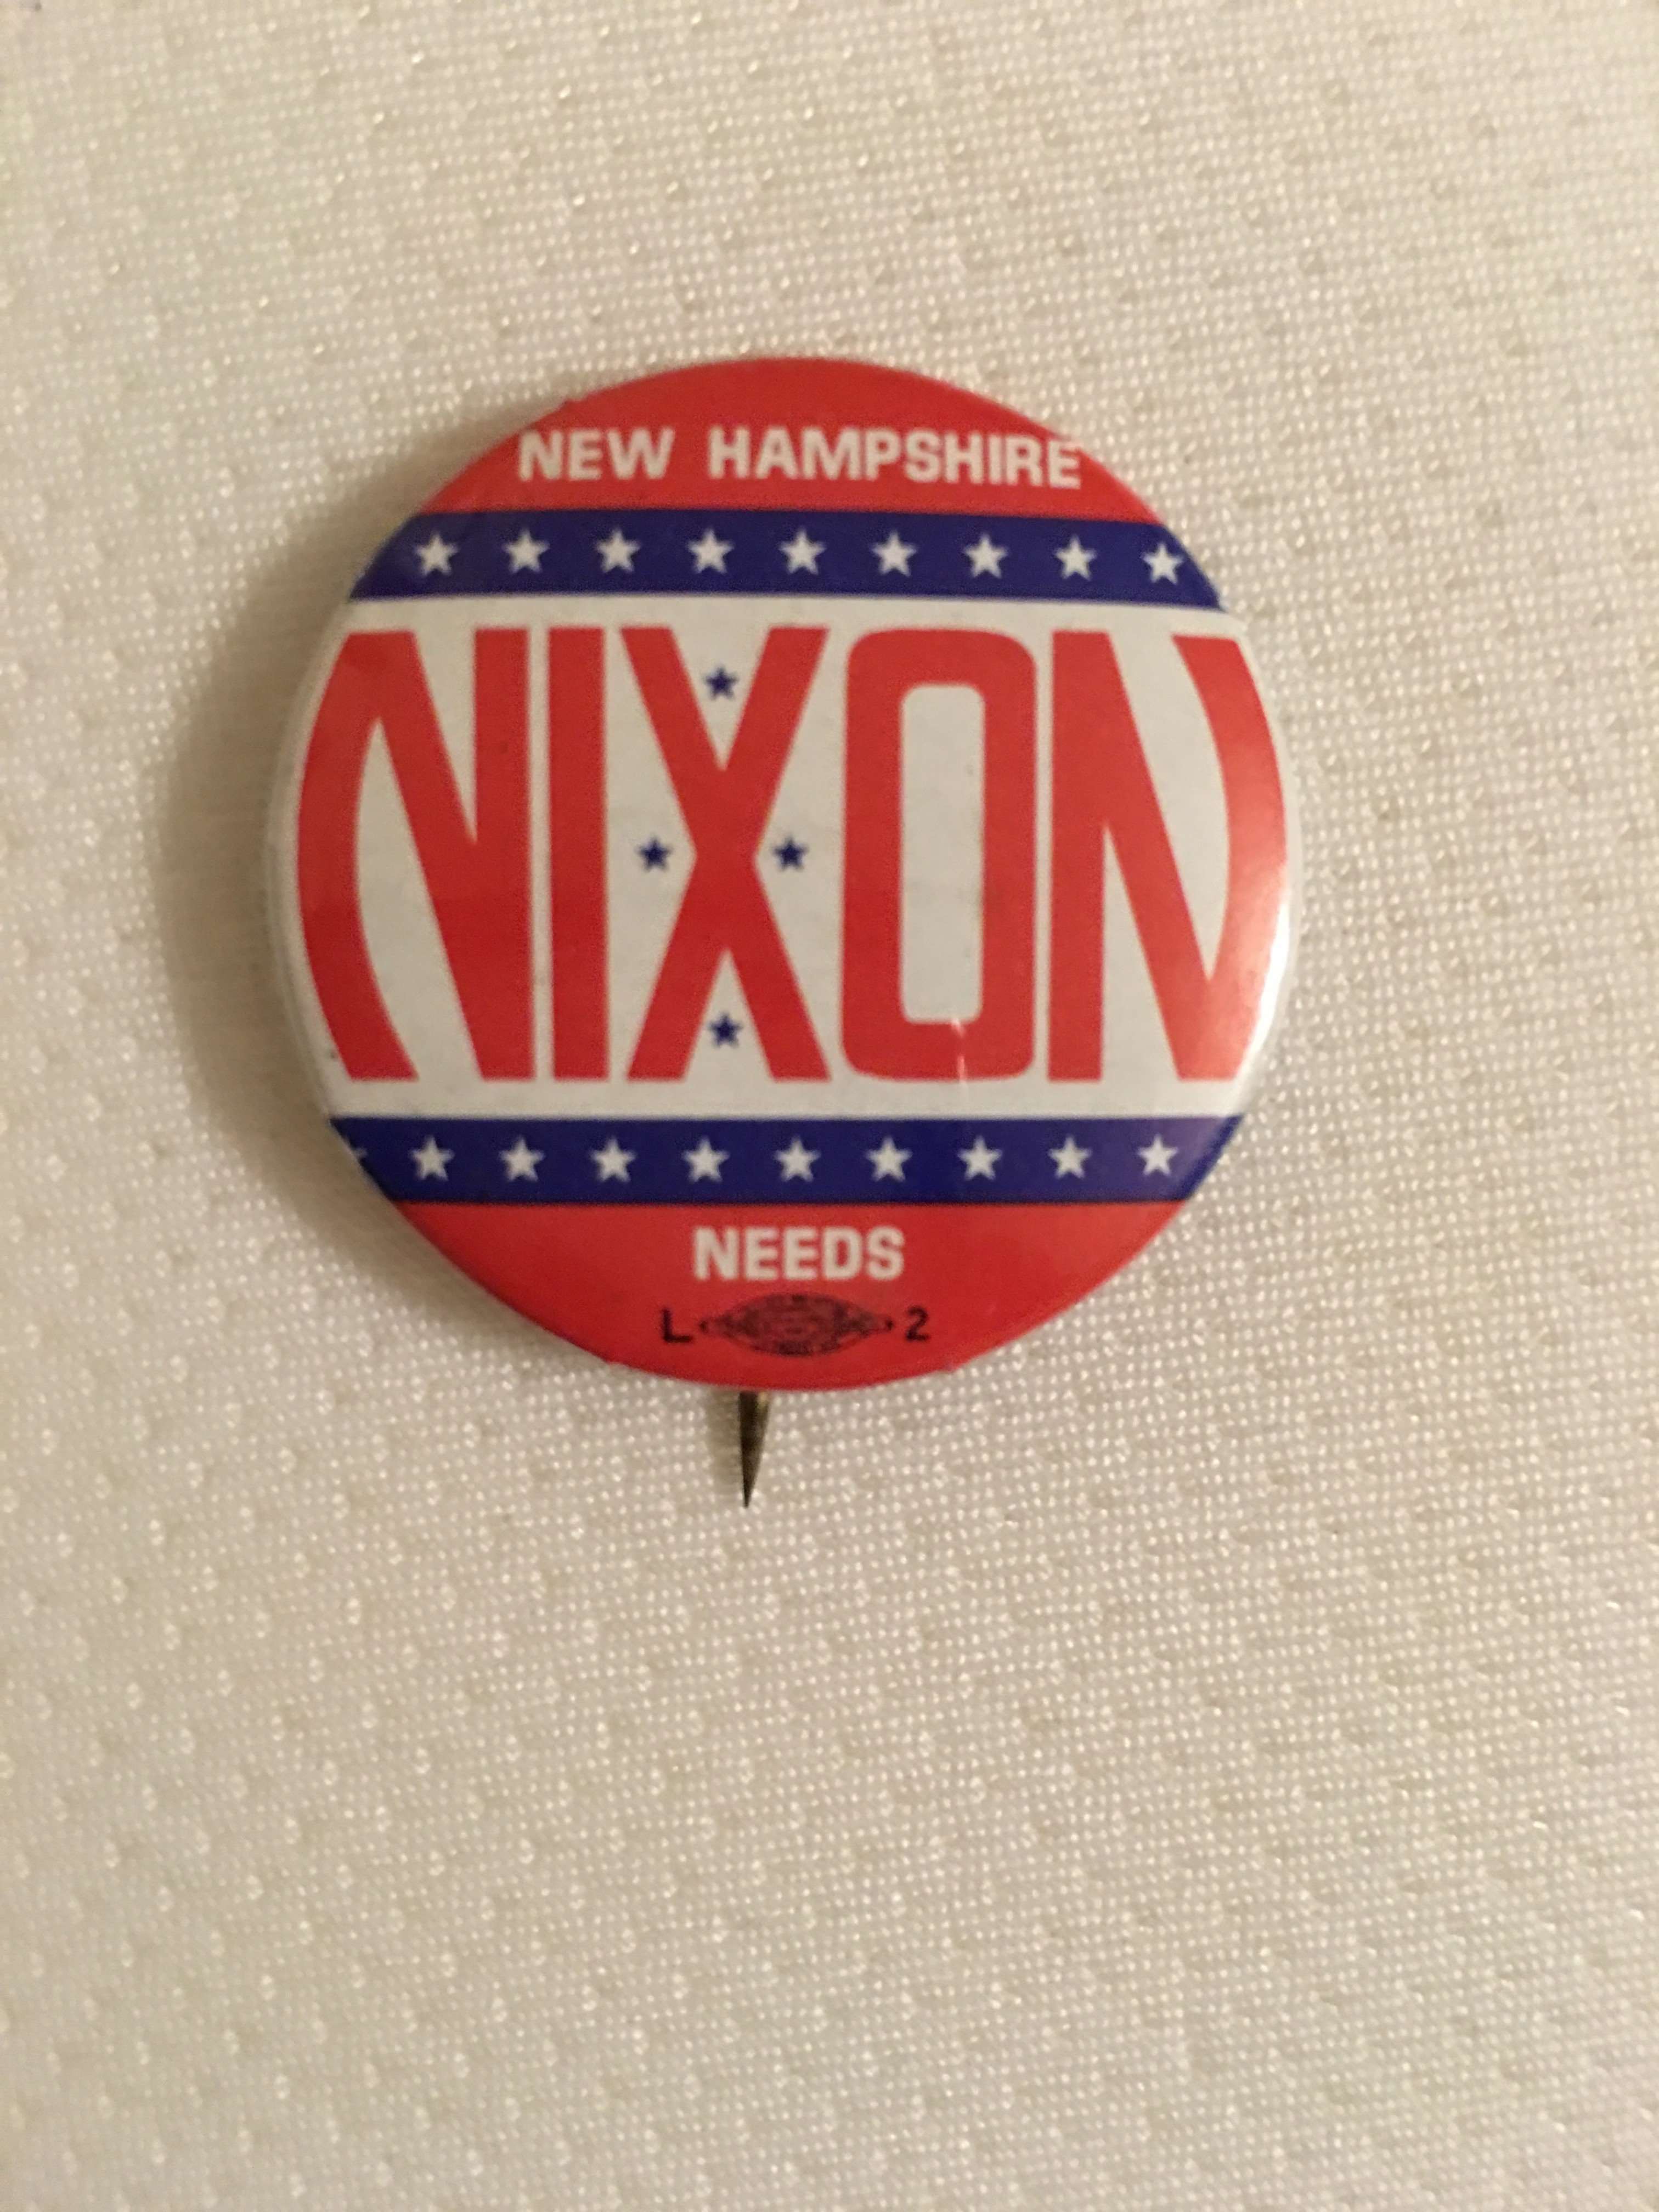 New Hampshire Nixon